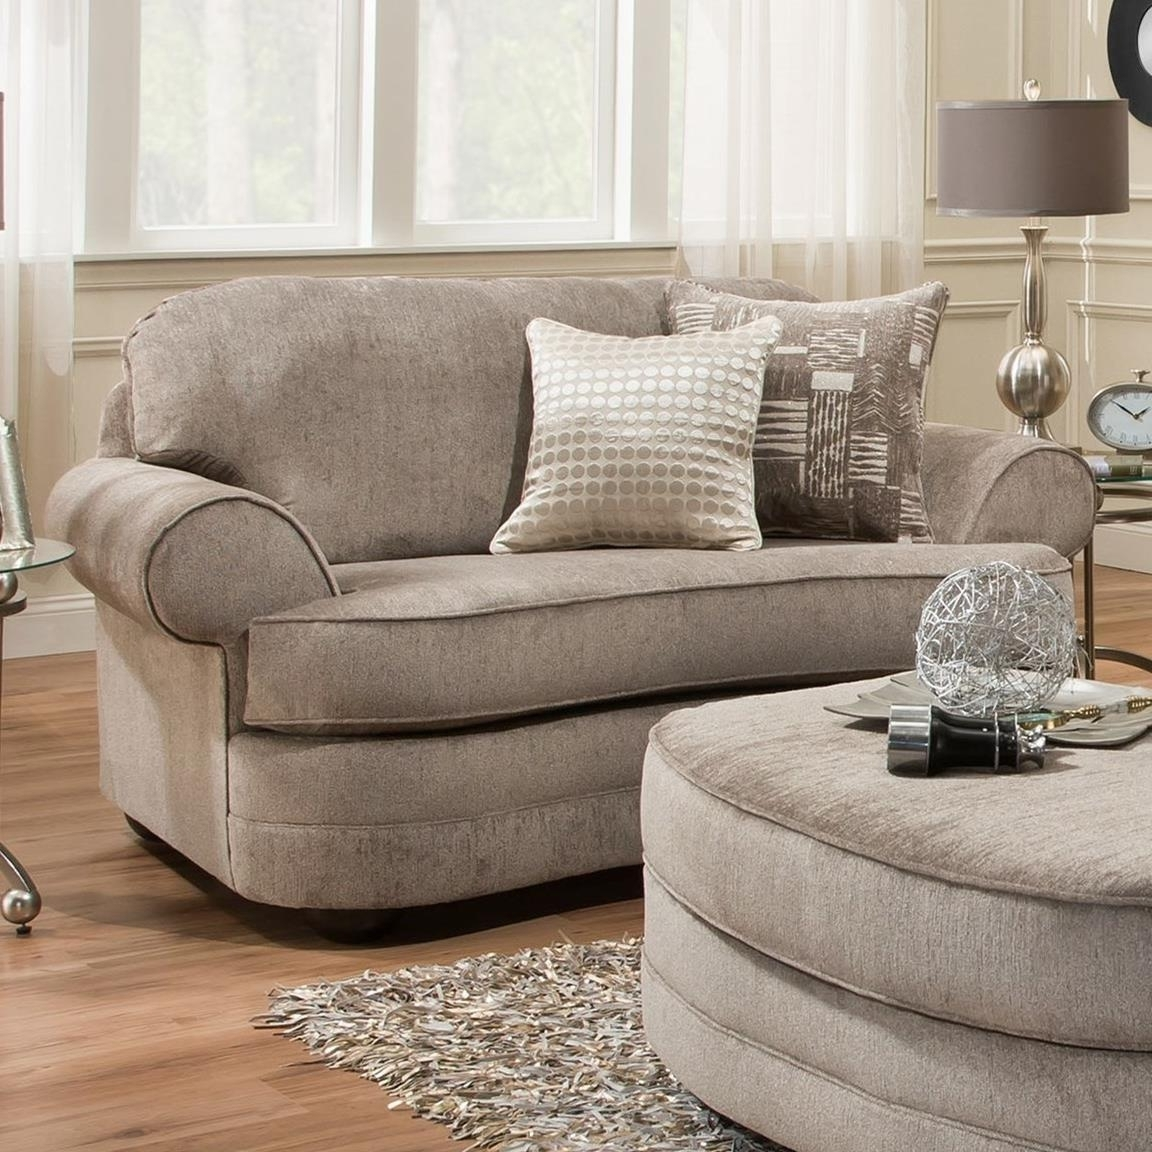 Trendy Jackson Tn Sectional Sofas Throughout Furniture : Royal Furniture Jackson Tn Awesome Simmons Upholstery (View 17 of 20)